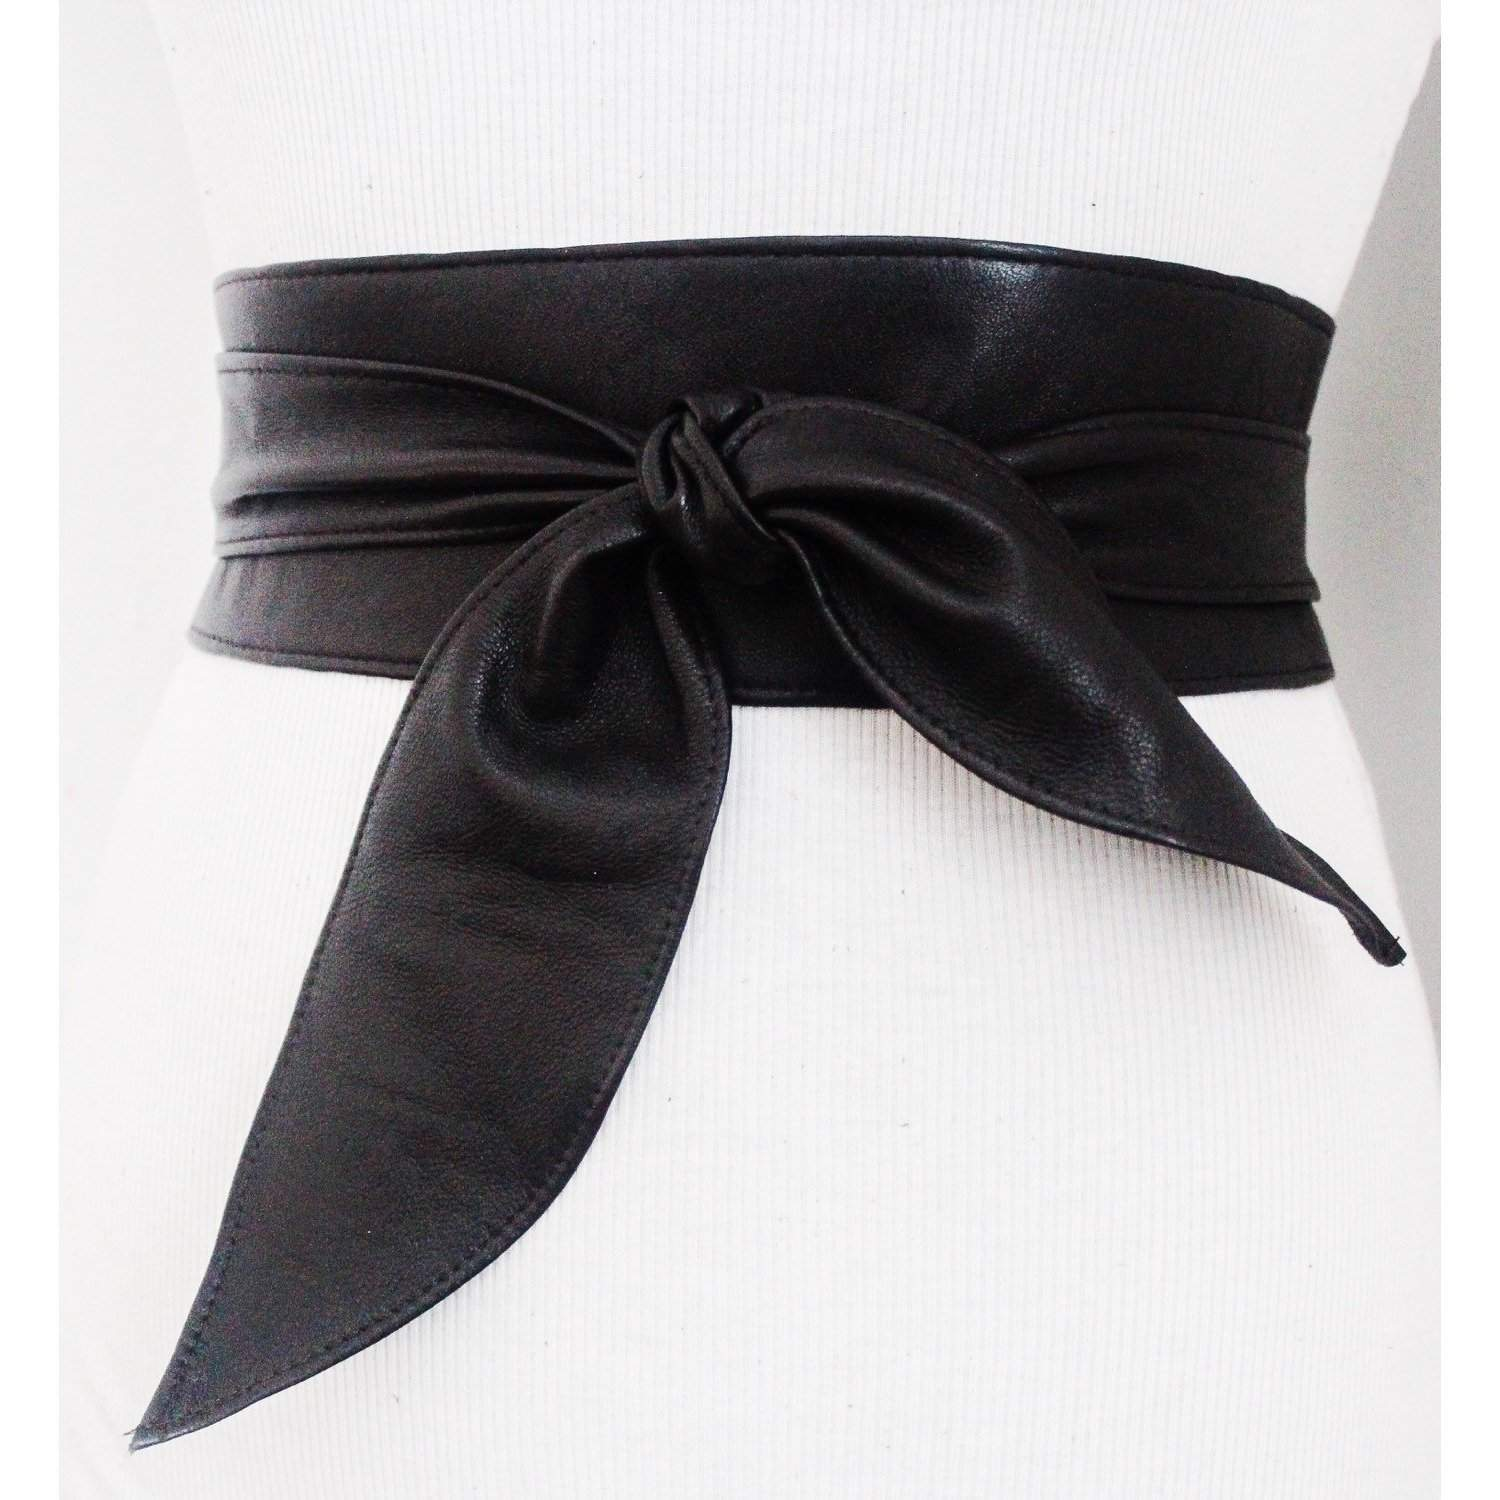 Black Brown Soft Leather Obi Tulip tie belt - loveyaayaa